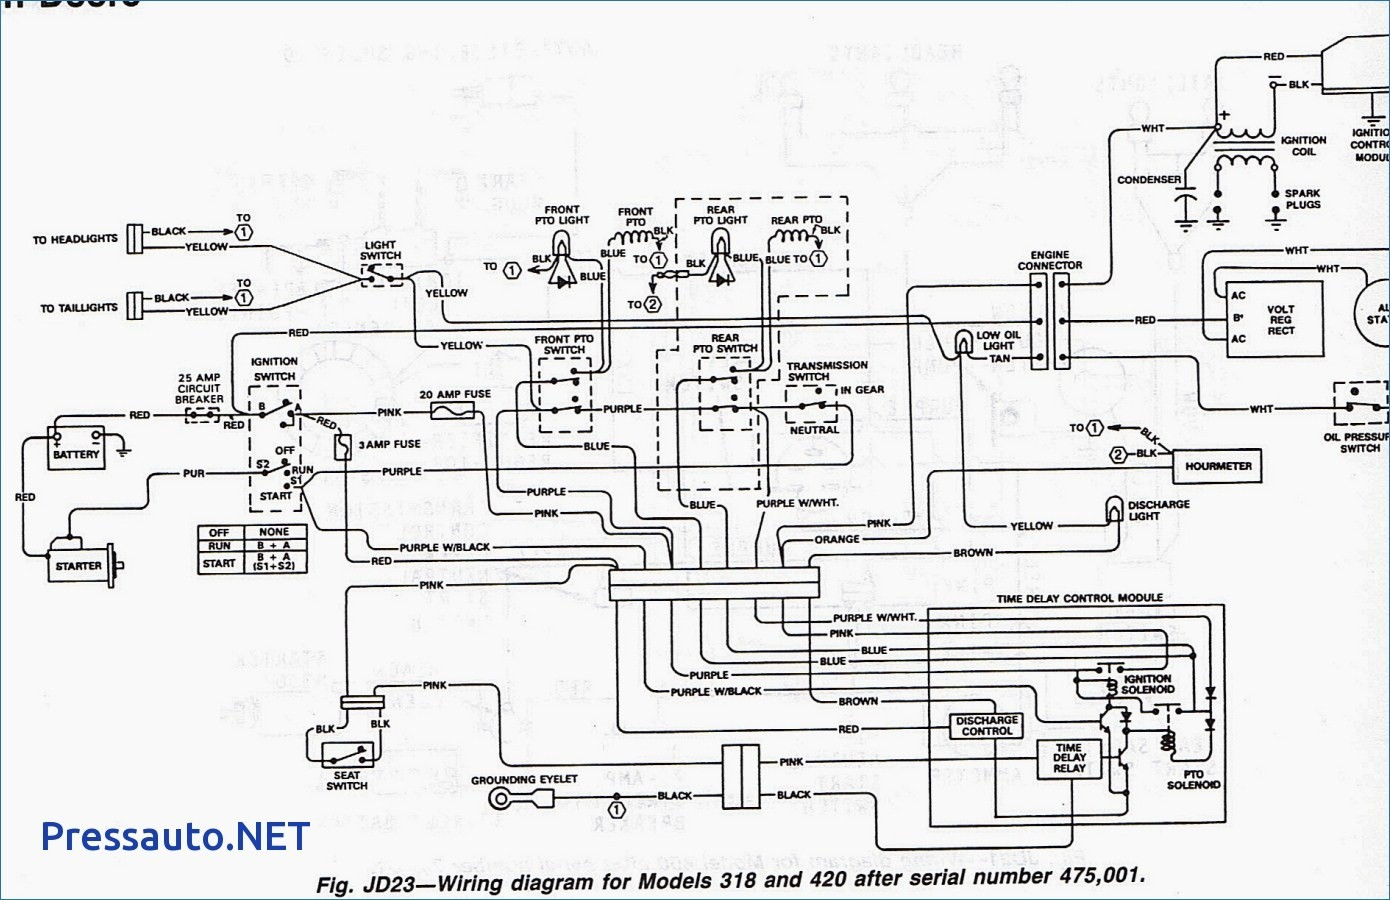 John Deere 160 Wiring Diagram Worksheet And 345 Harness Schematic Schematics Rh Enr Green Com Lawn Tractor Electrical